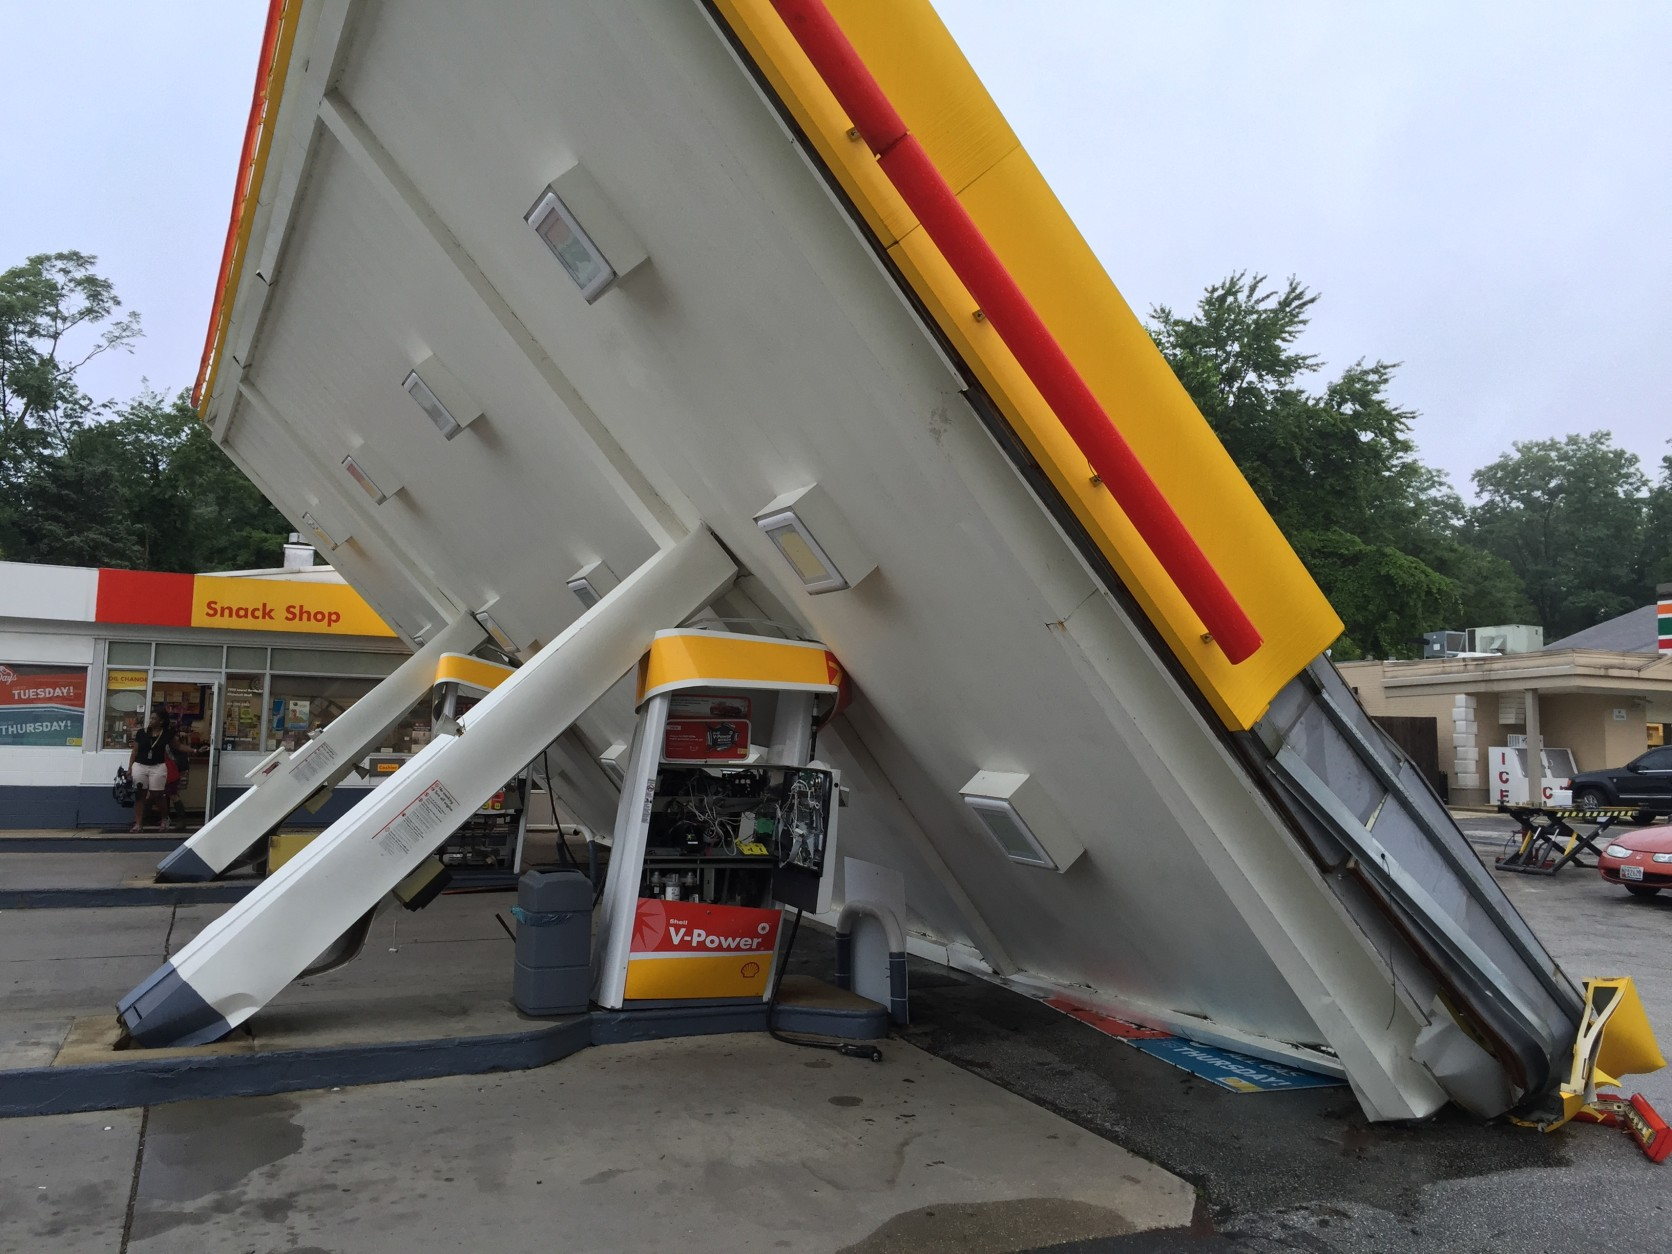 & Storm takes out canopy at Md. gas station | WTOP